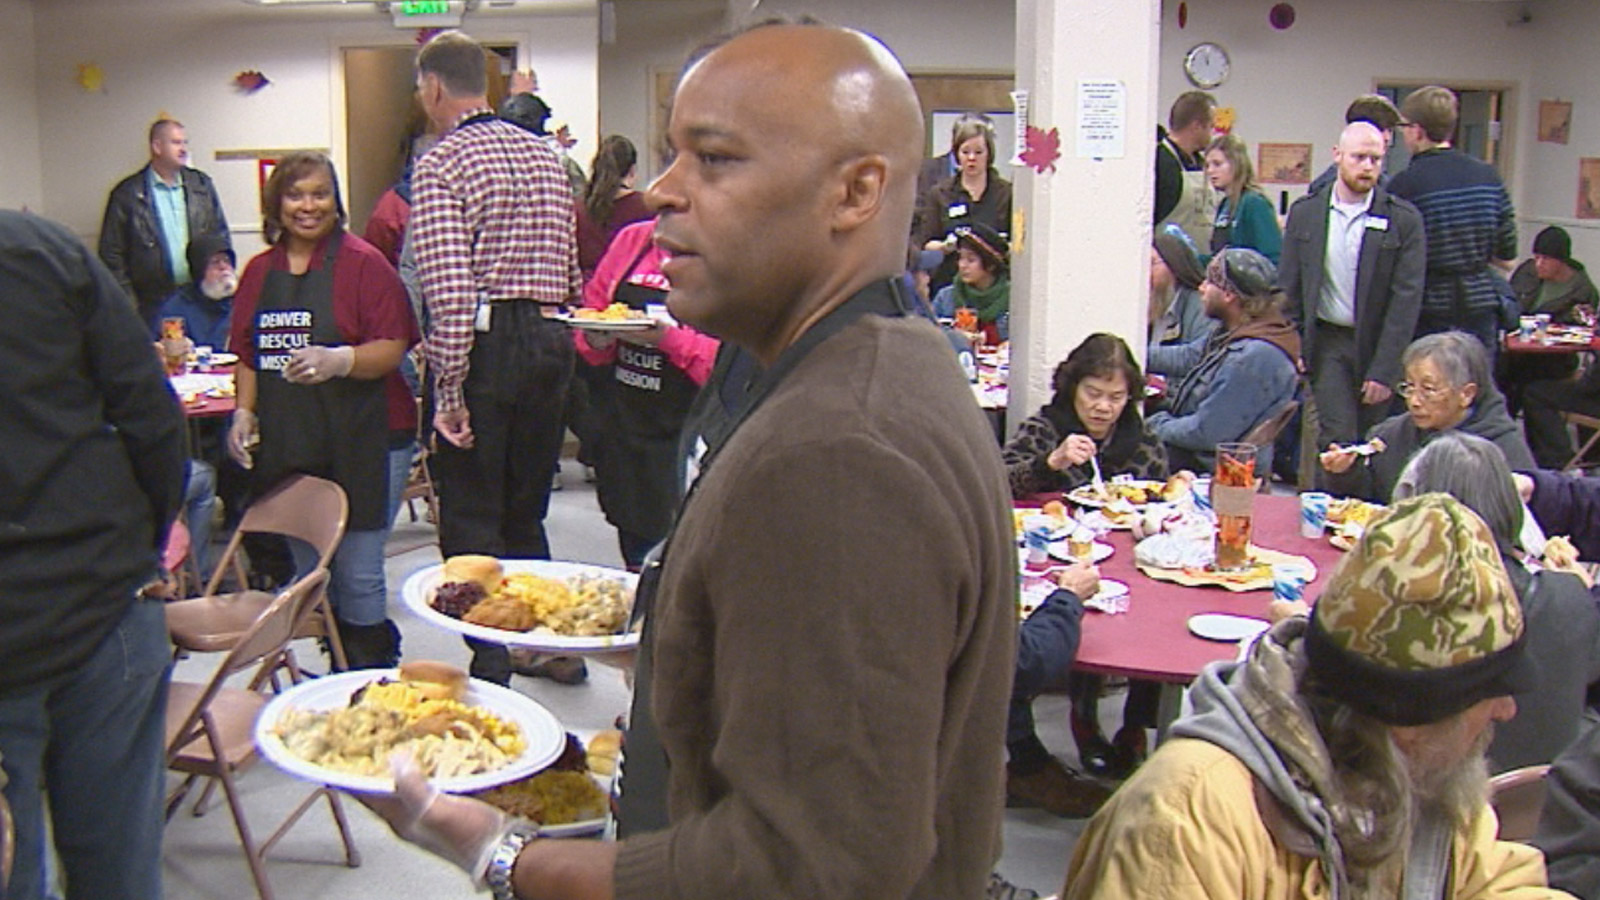 Denver Mayor Michael Hancock served lunch to the homeless on Wednesday (credit: CBS)